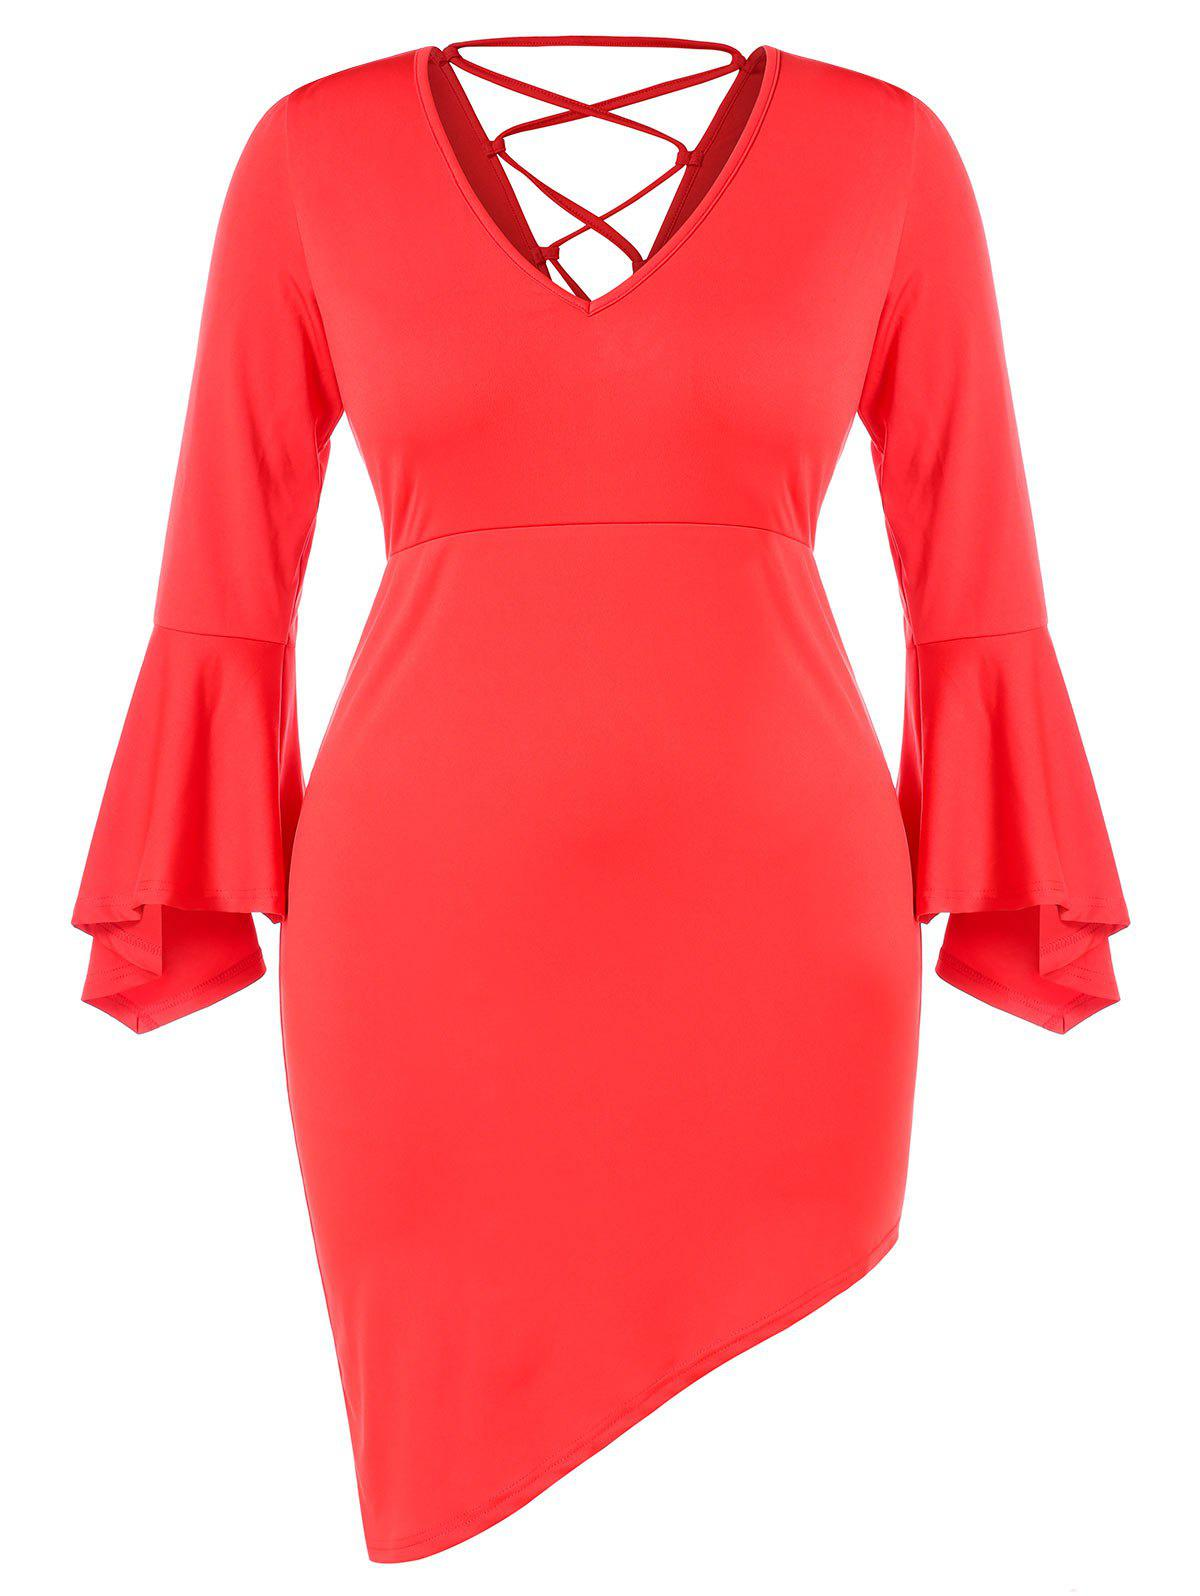 Plus Size V Neck Lace Up Bell Sleeves Asymmetric Dress фото